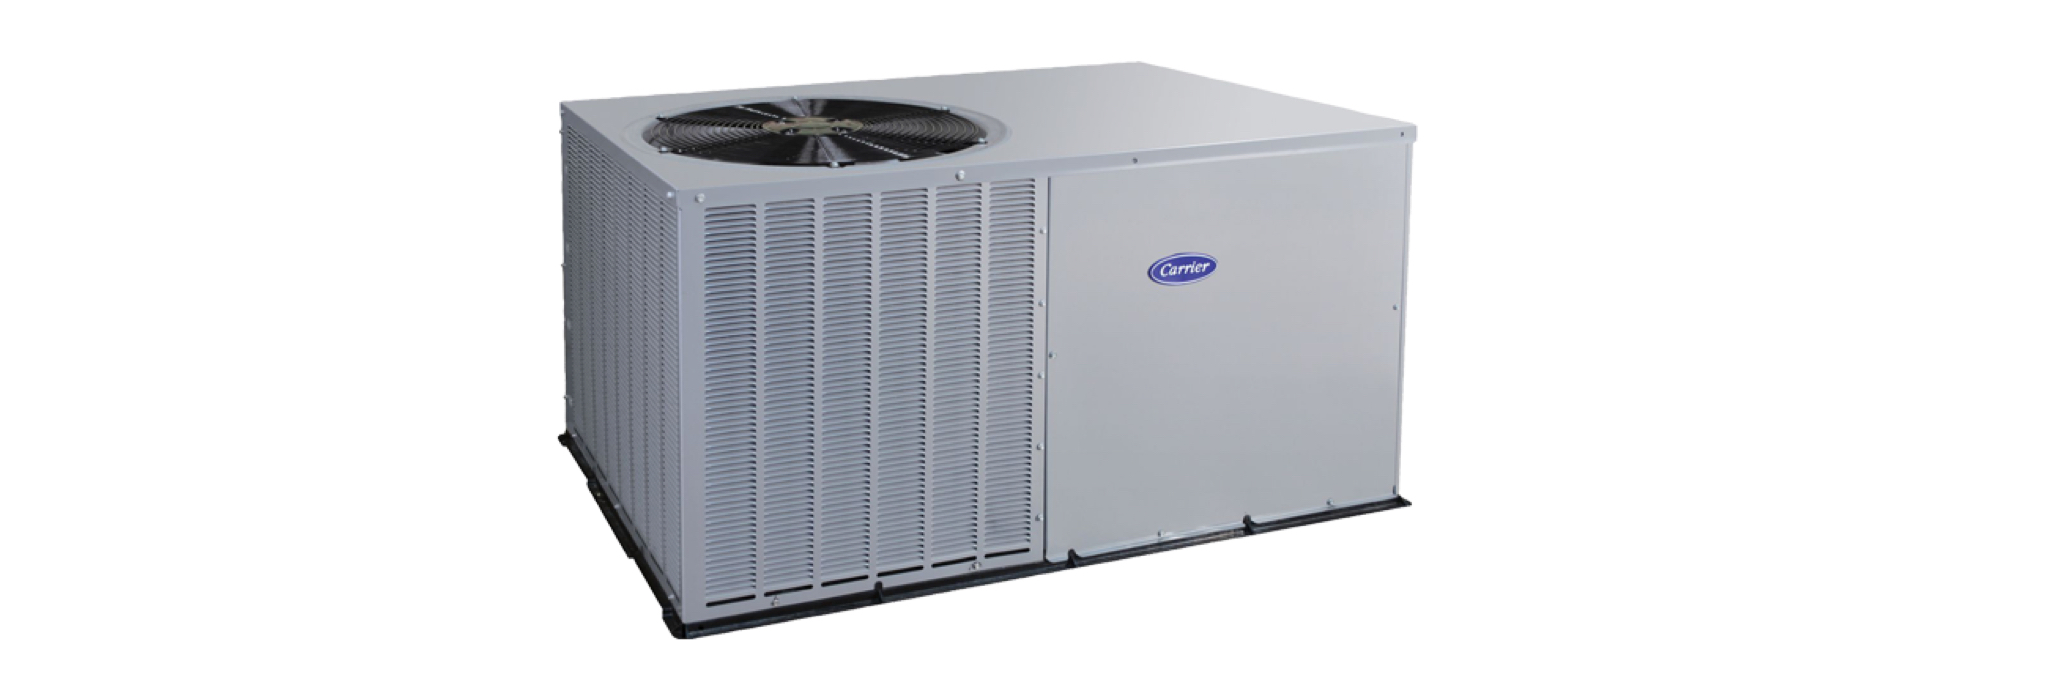 Eubanks Air Conditioning And Appliance Service Systems